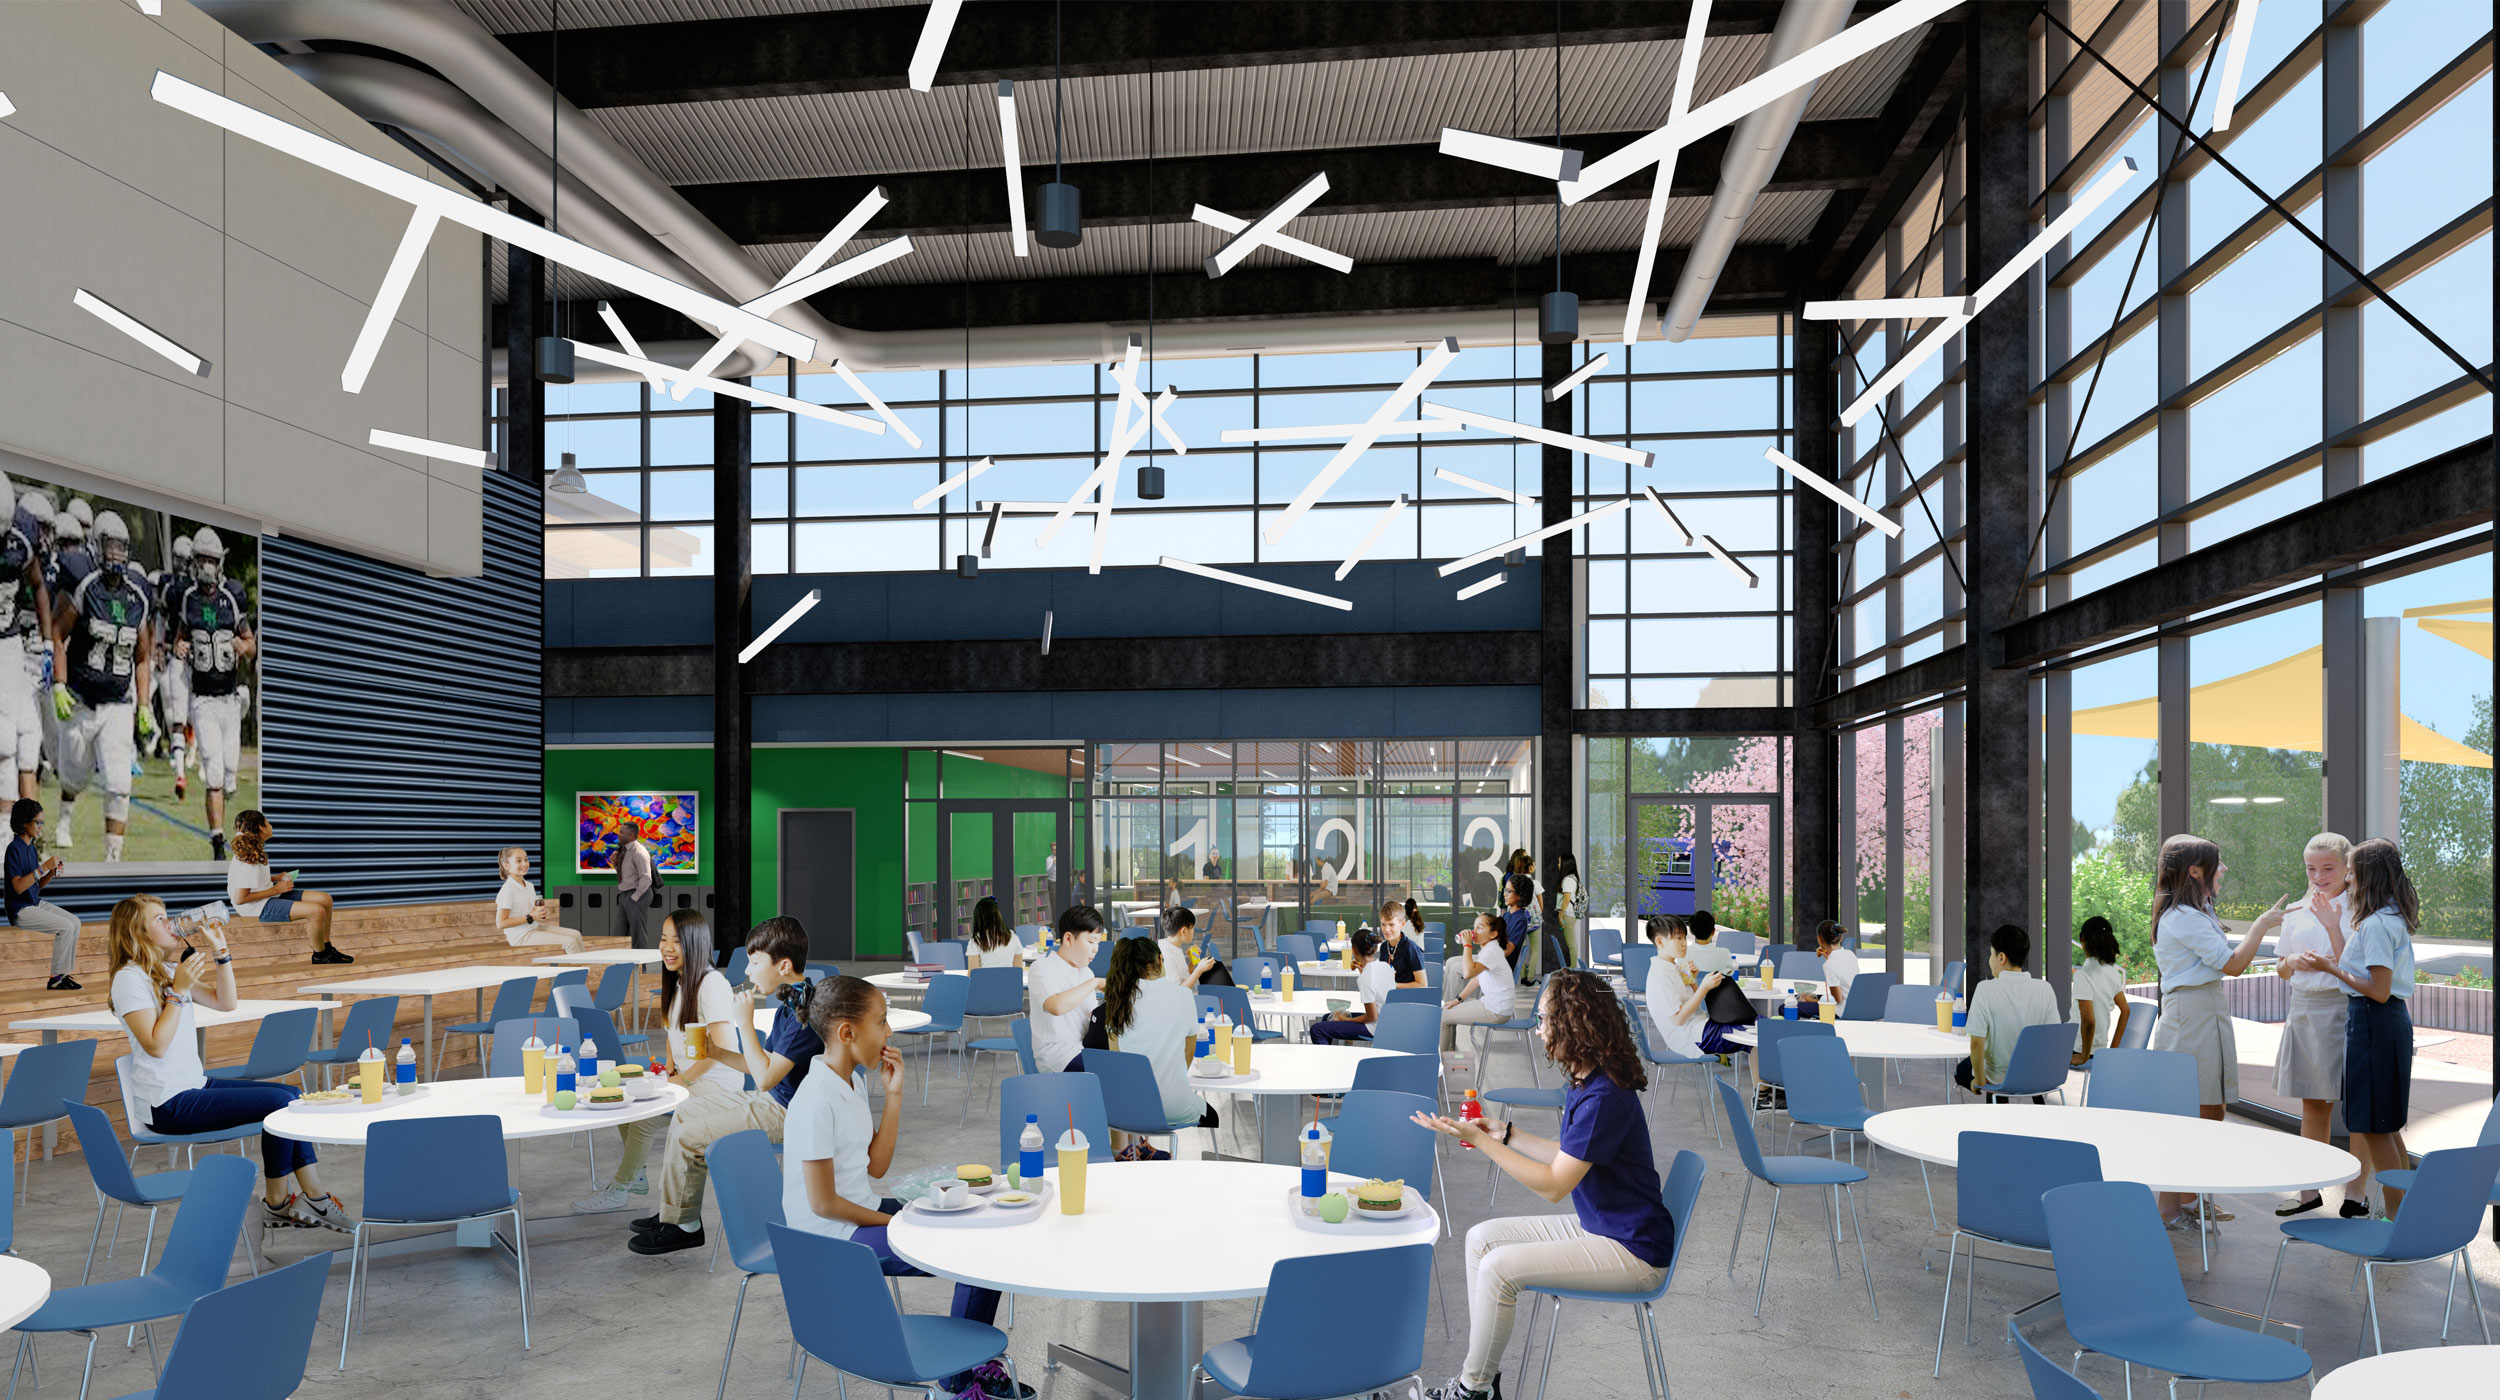 The Commons  — the heart of the new building — is a cafeteria, a meeting space, and a place to celebrate our unique community. At rear, behind a soundproof glass wall, is the Learning Commons, a place for studying, reading, dreaming.